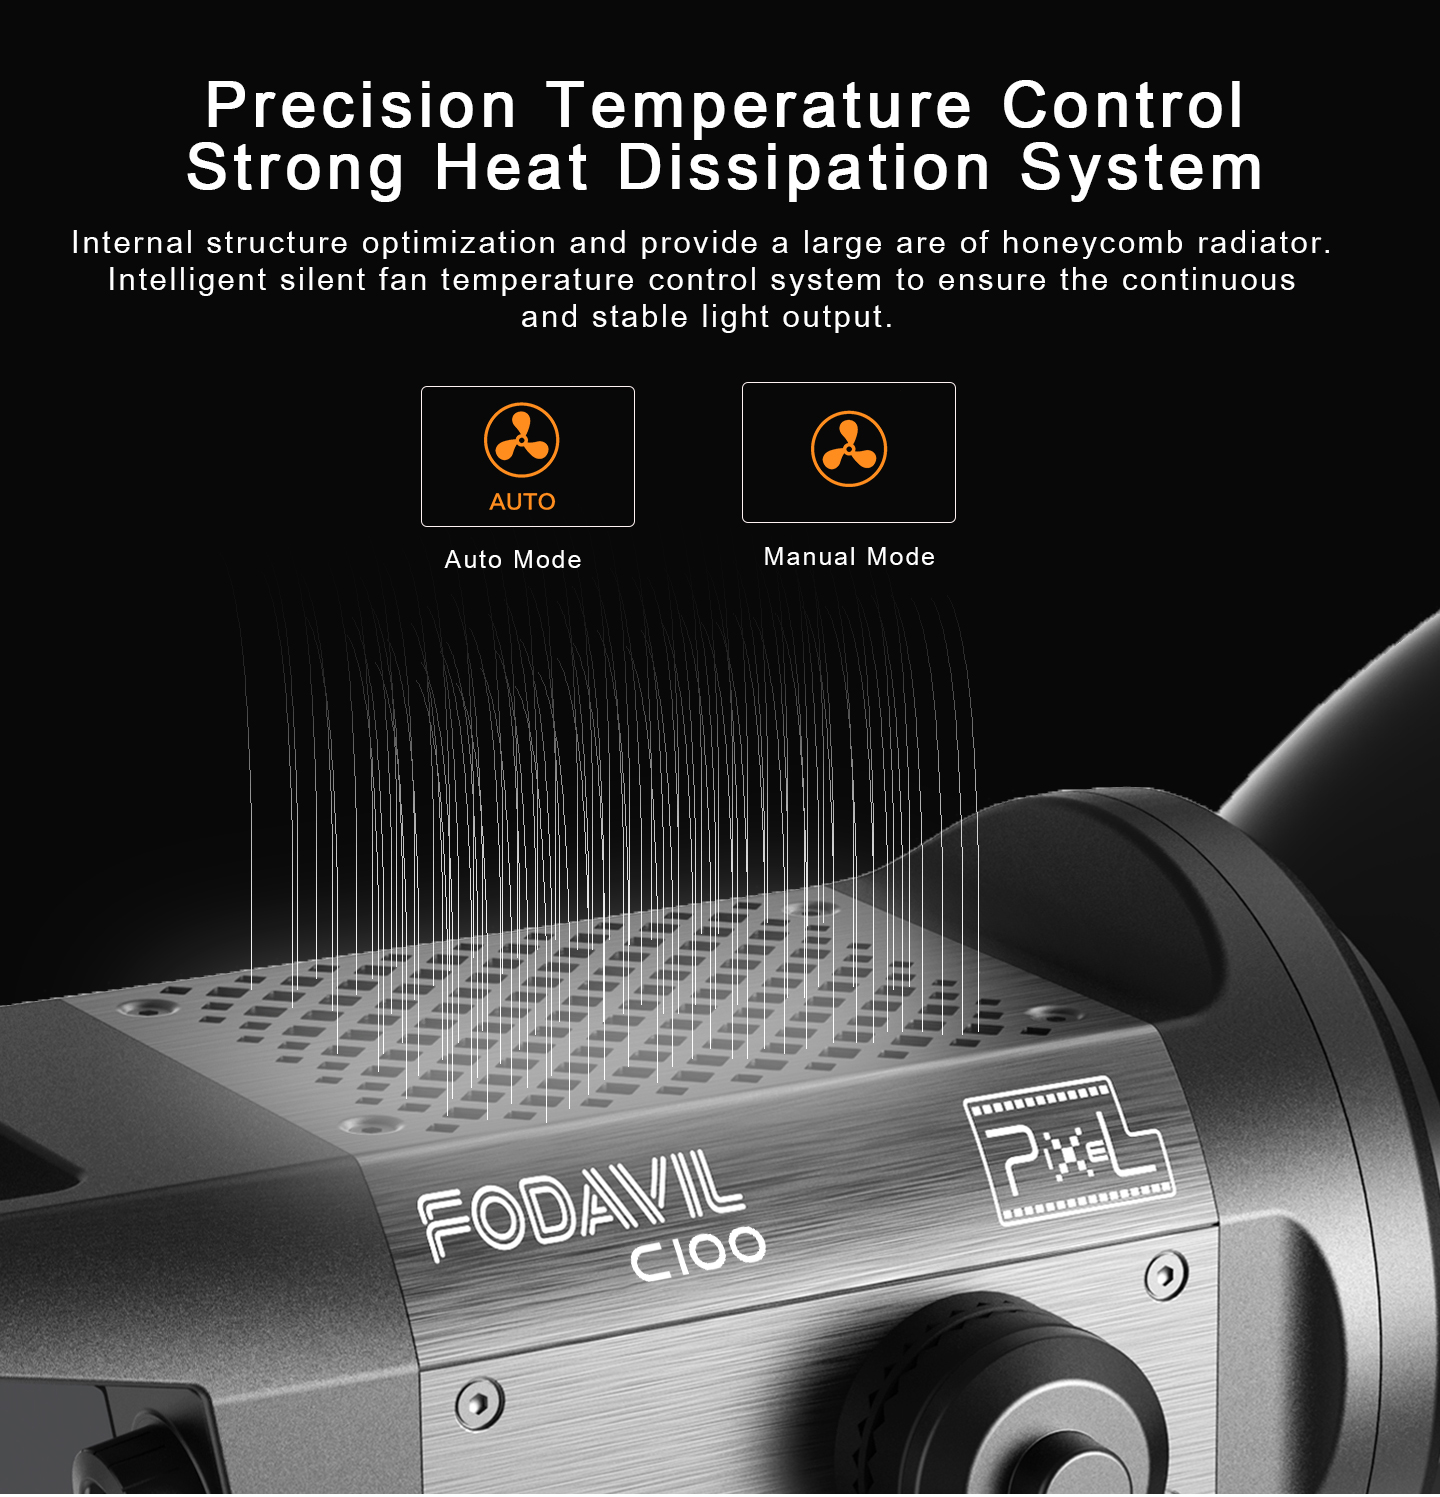 Precision Temperature Control Strong Heat Dissipation System